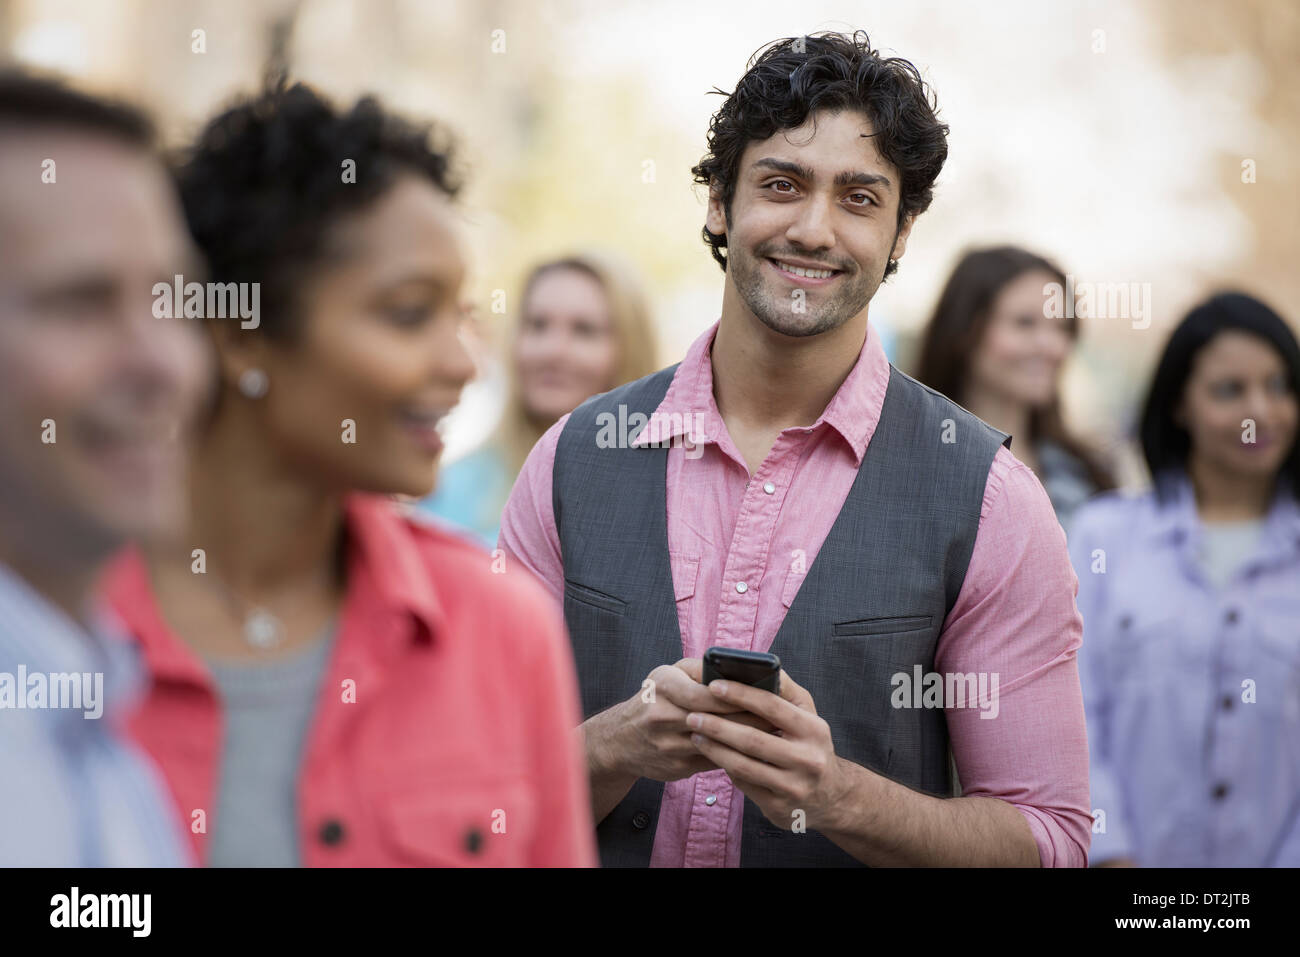 park and one young man holding a mobile phone - Stock Image